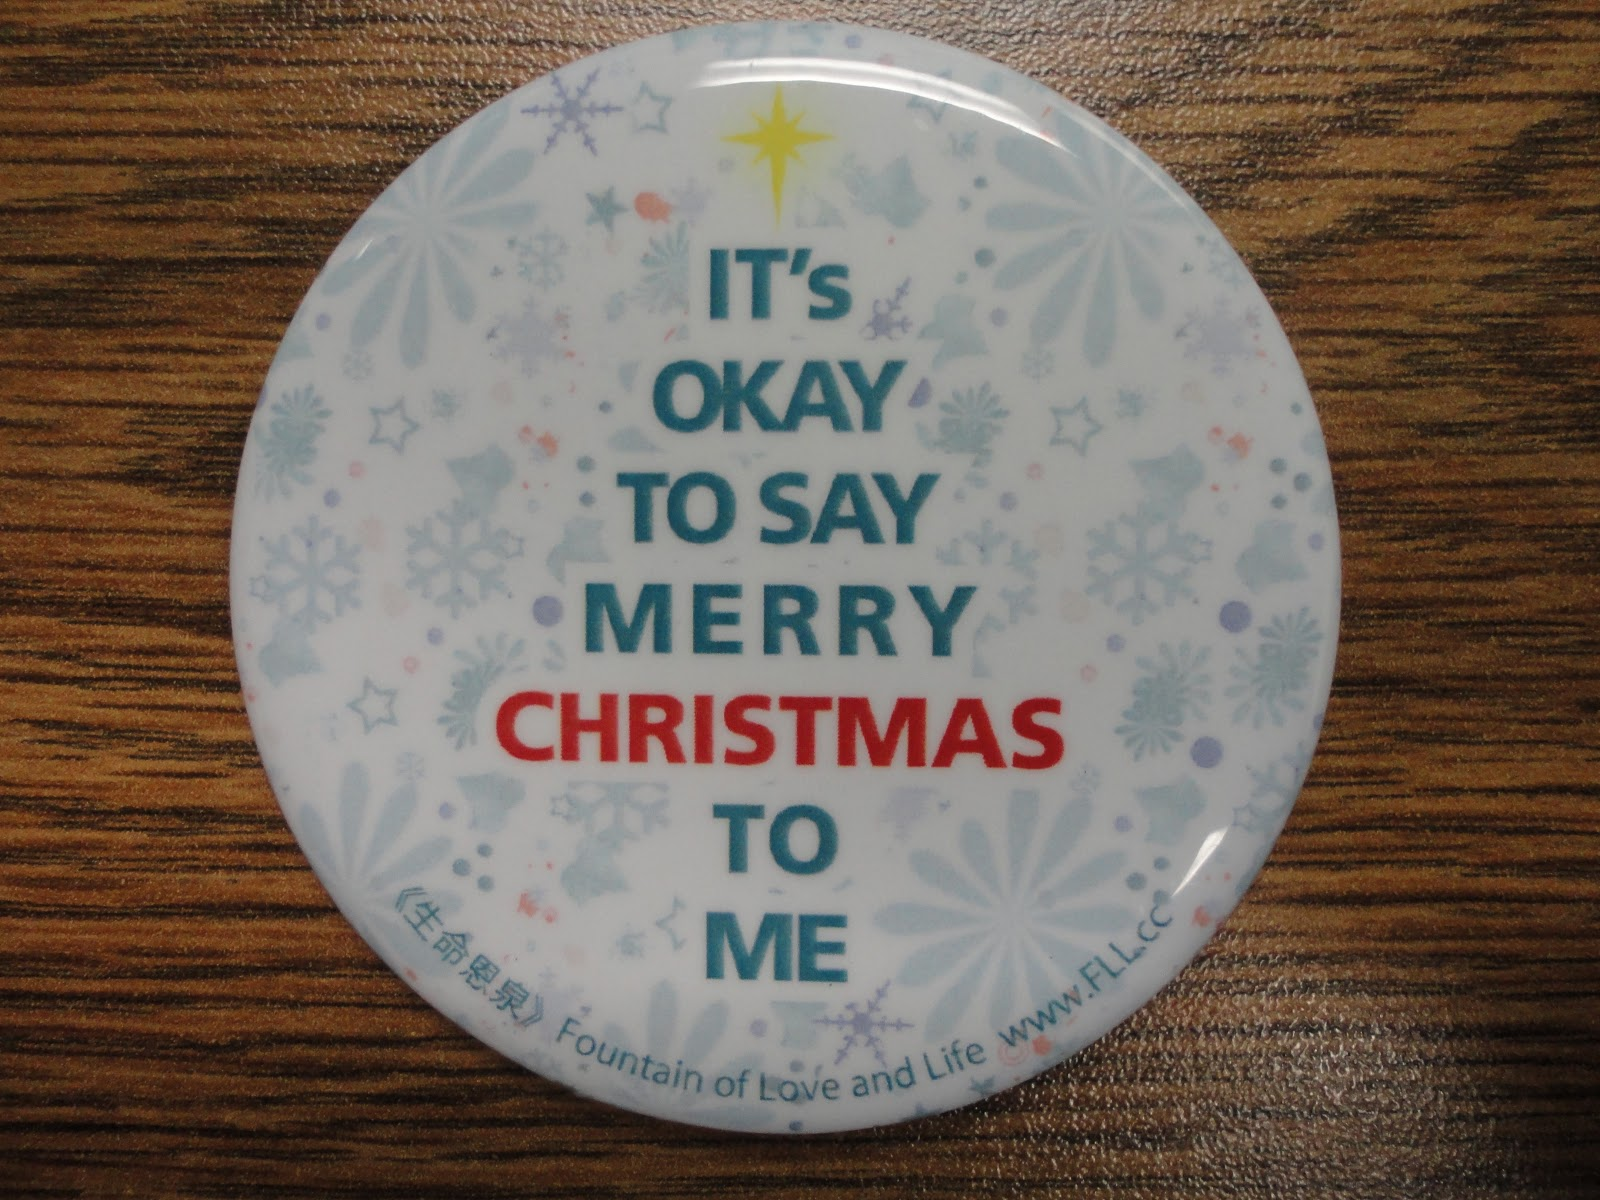 yesterday a brother in the community gave a pin that says its okay to say merry christmas to me looking at it i cannot help by sigh at how far - Merry Christmas To Me